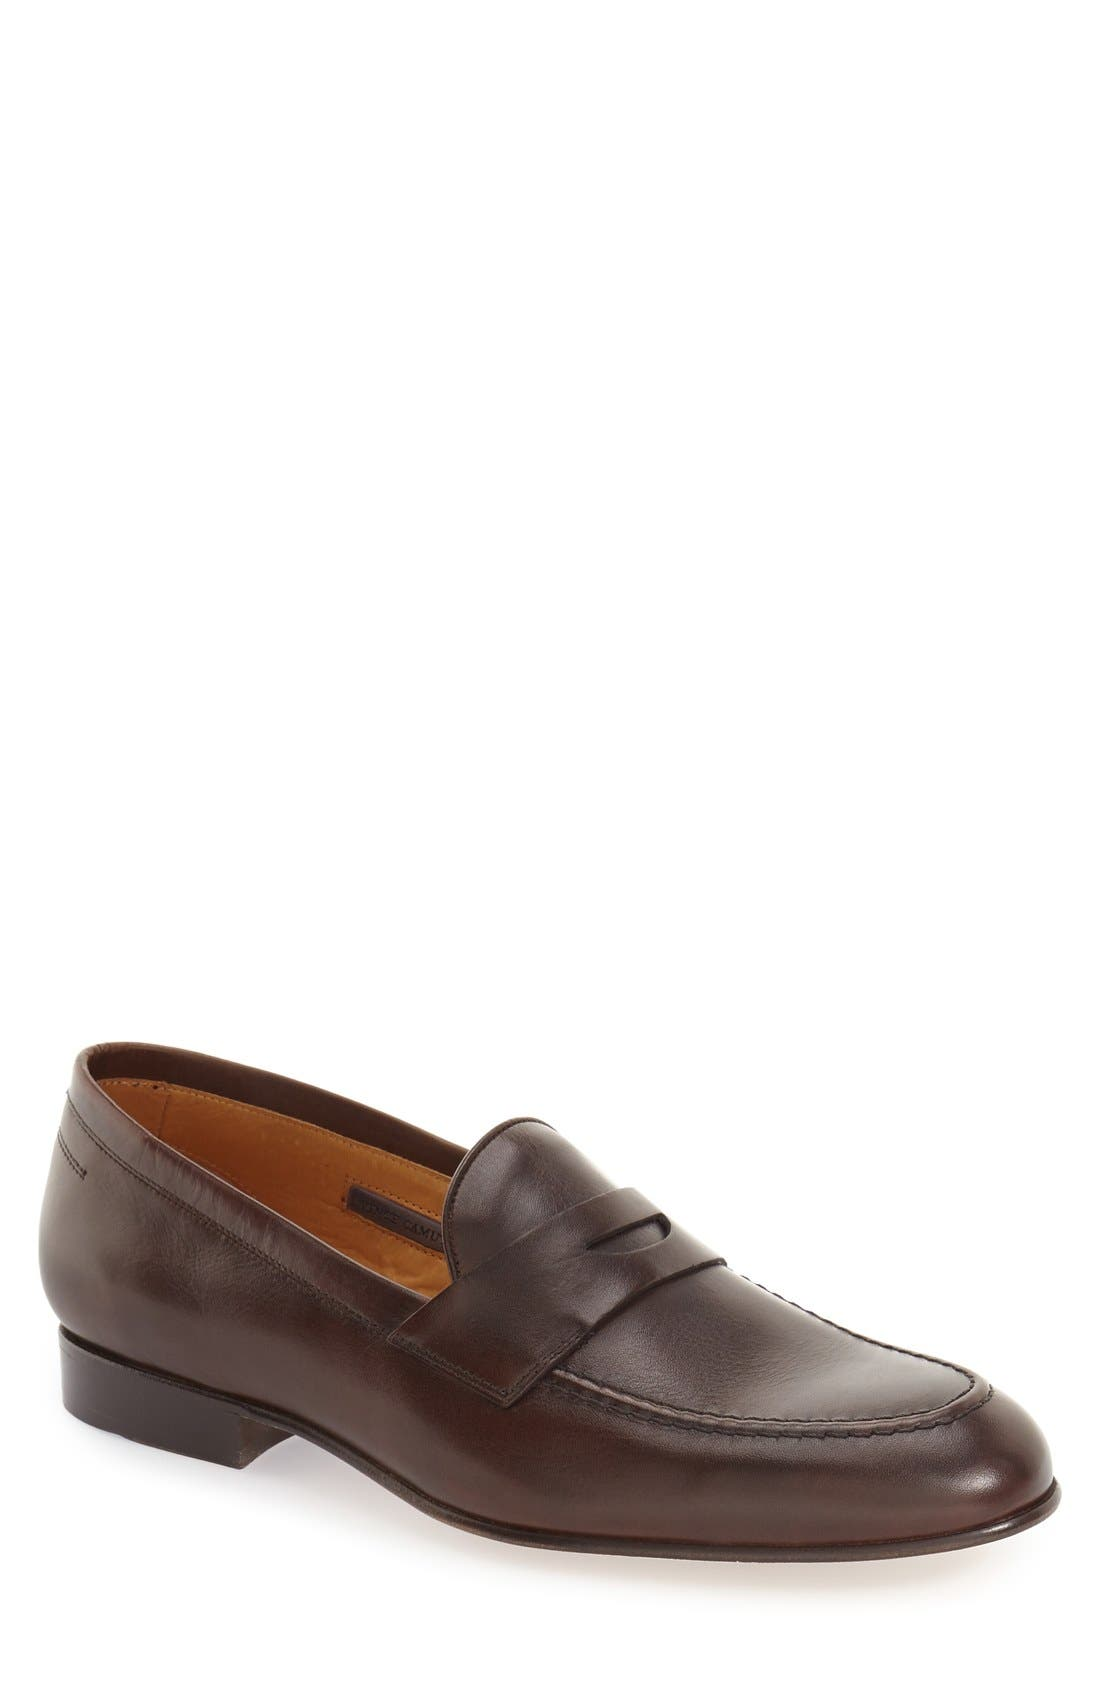 New Vince Camuto Benvo For Men Sale